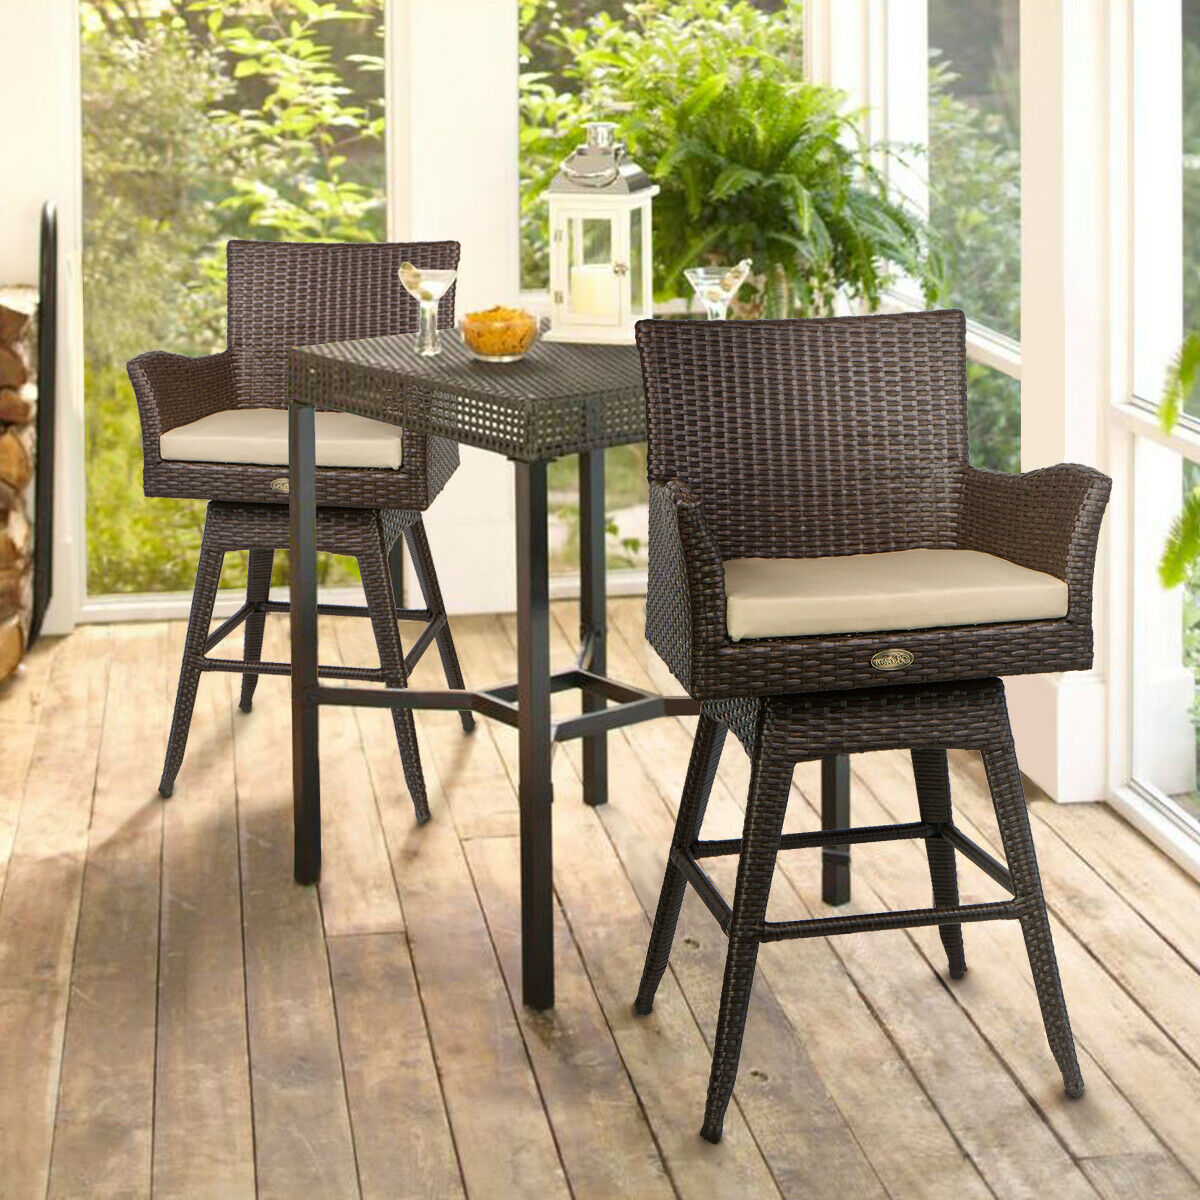 Swell Outdoor Patio Furniture All Weather Brown Pe Wicker Swivel Bar Stool Set Of 2 Andrewgaddart Wooden Chair Designs For Living Room Andrewgaddartcom